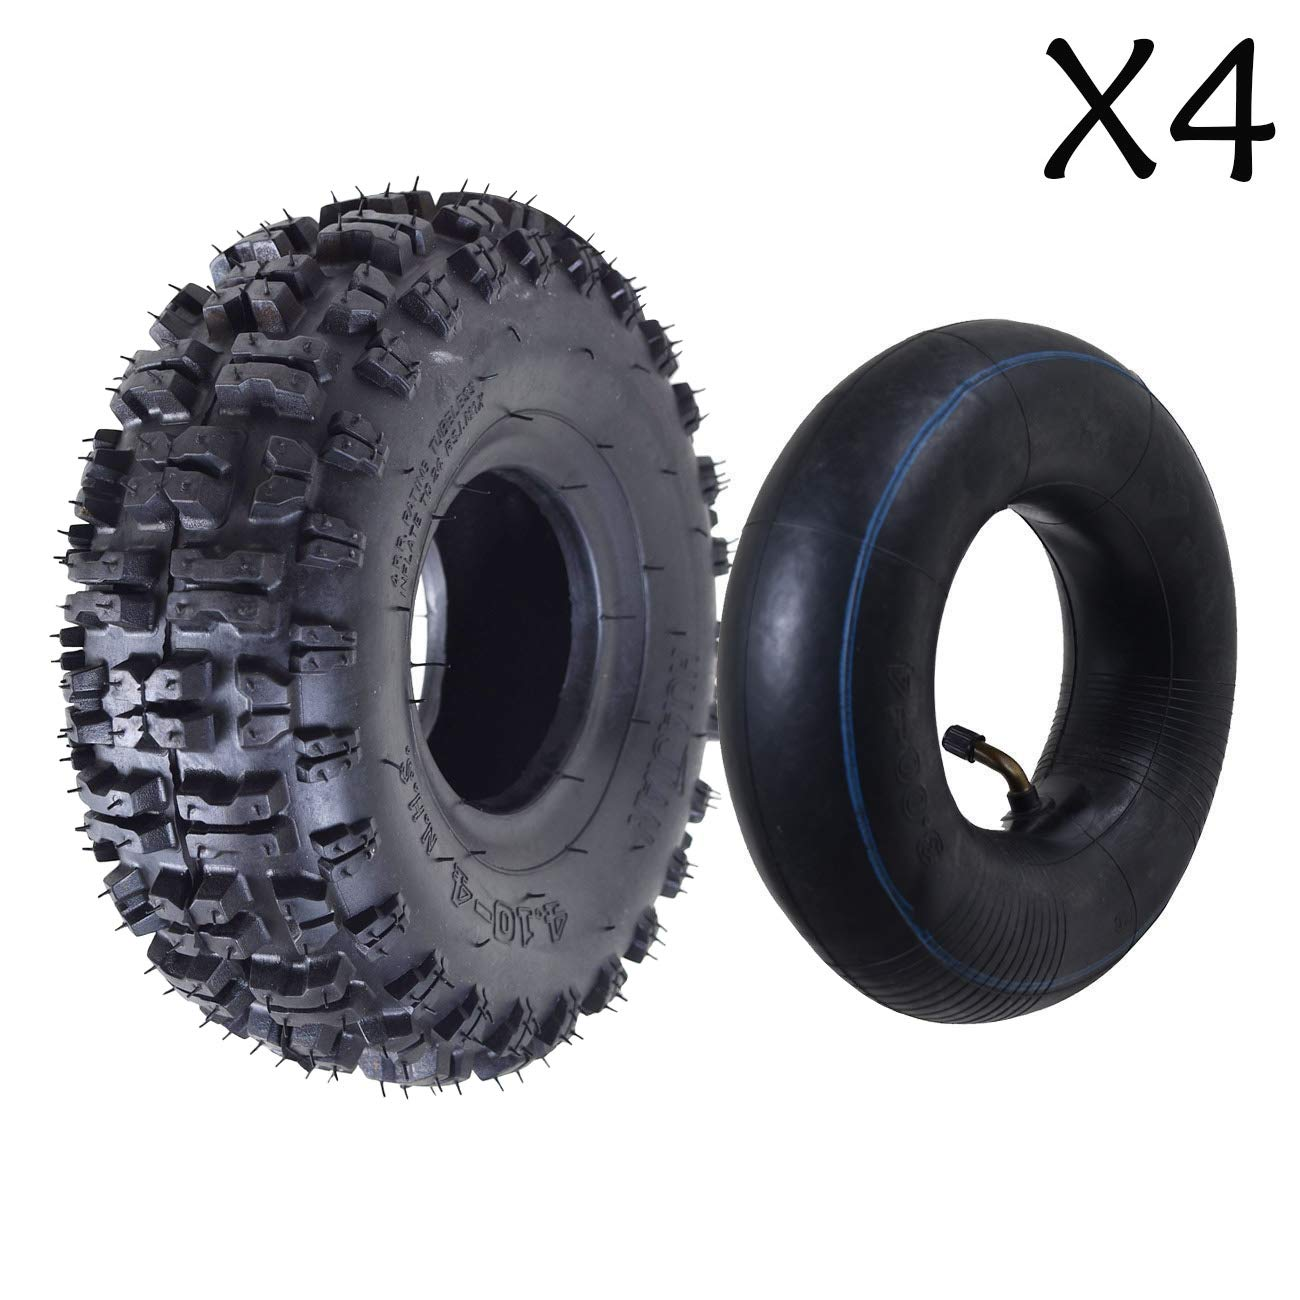 ZXTDR Pack of 4 Tire and Inner Tube 4.10x3.50-4'' | Off Road Mud ATV Quad Mini Pocket Bike Go kart Parts